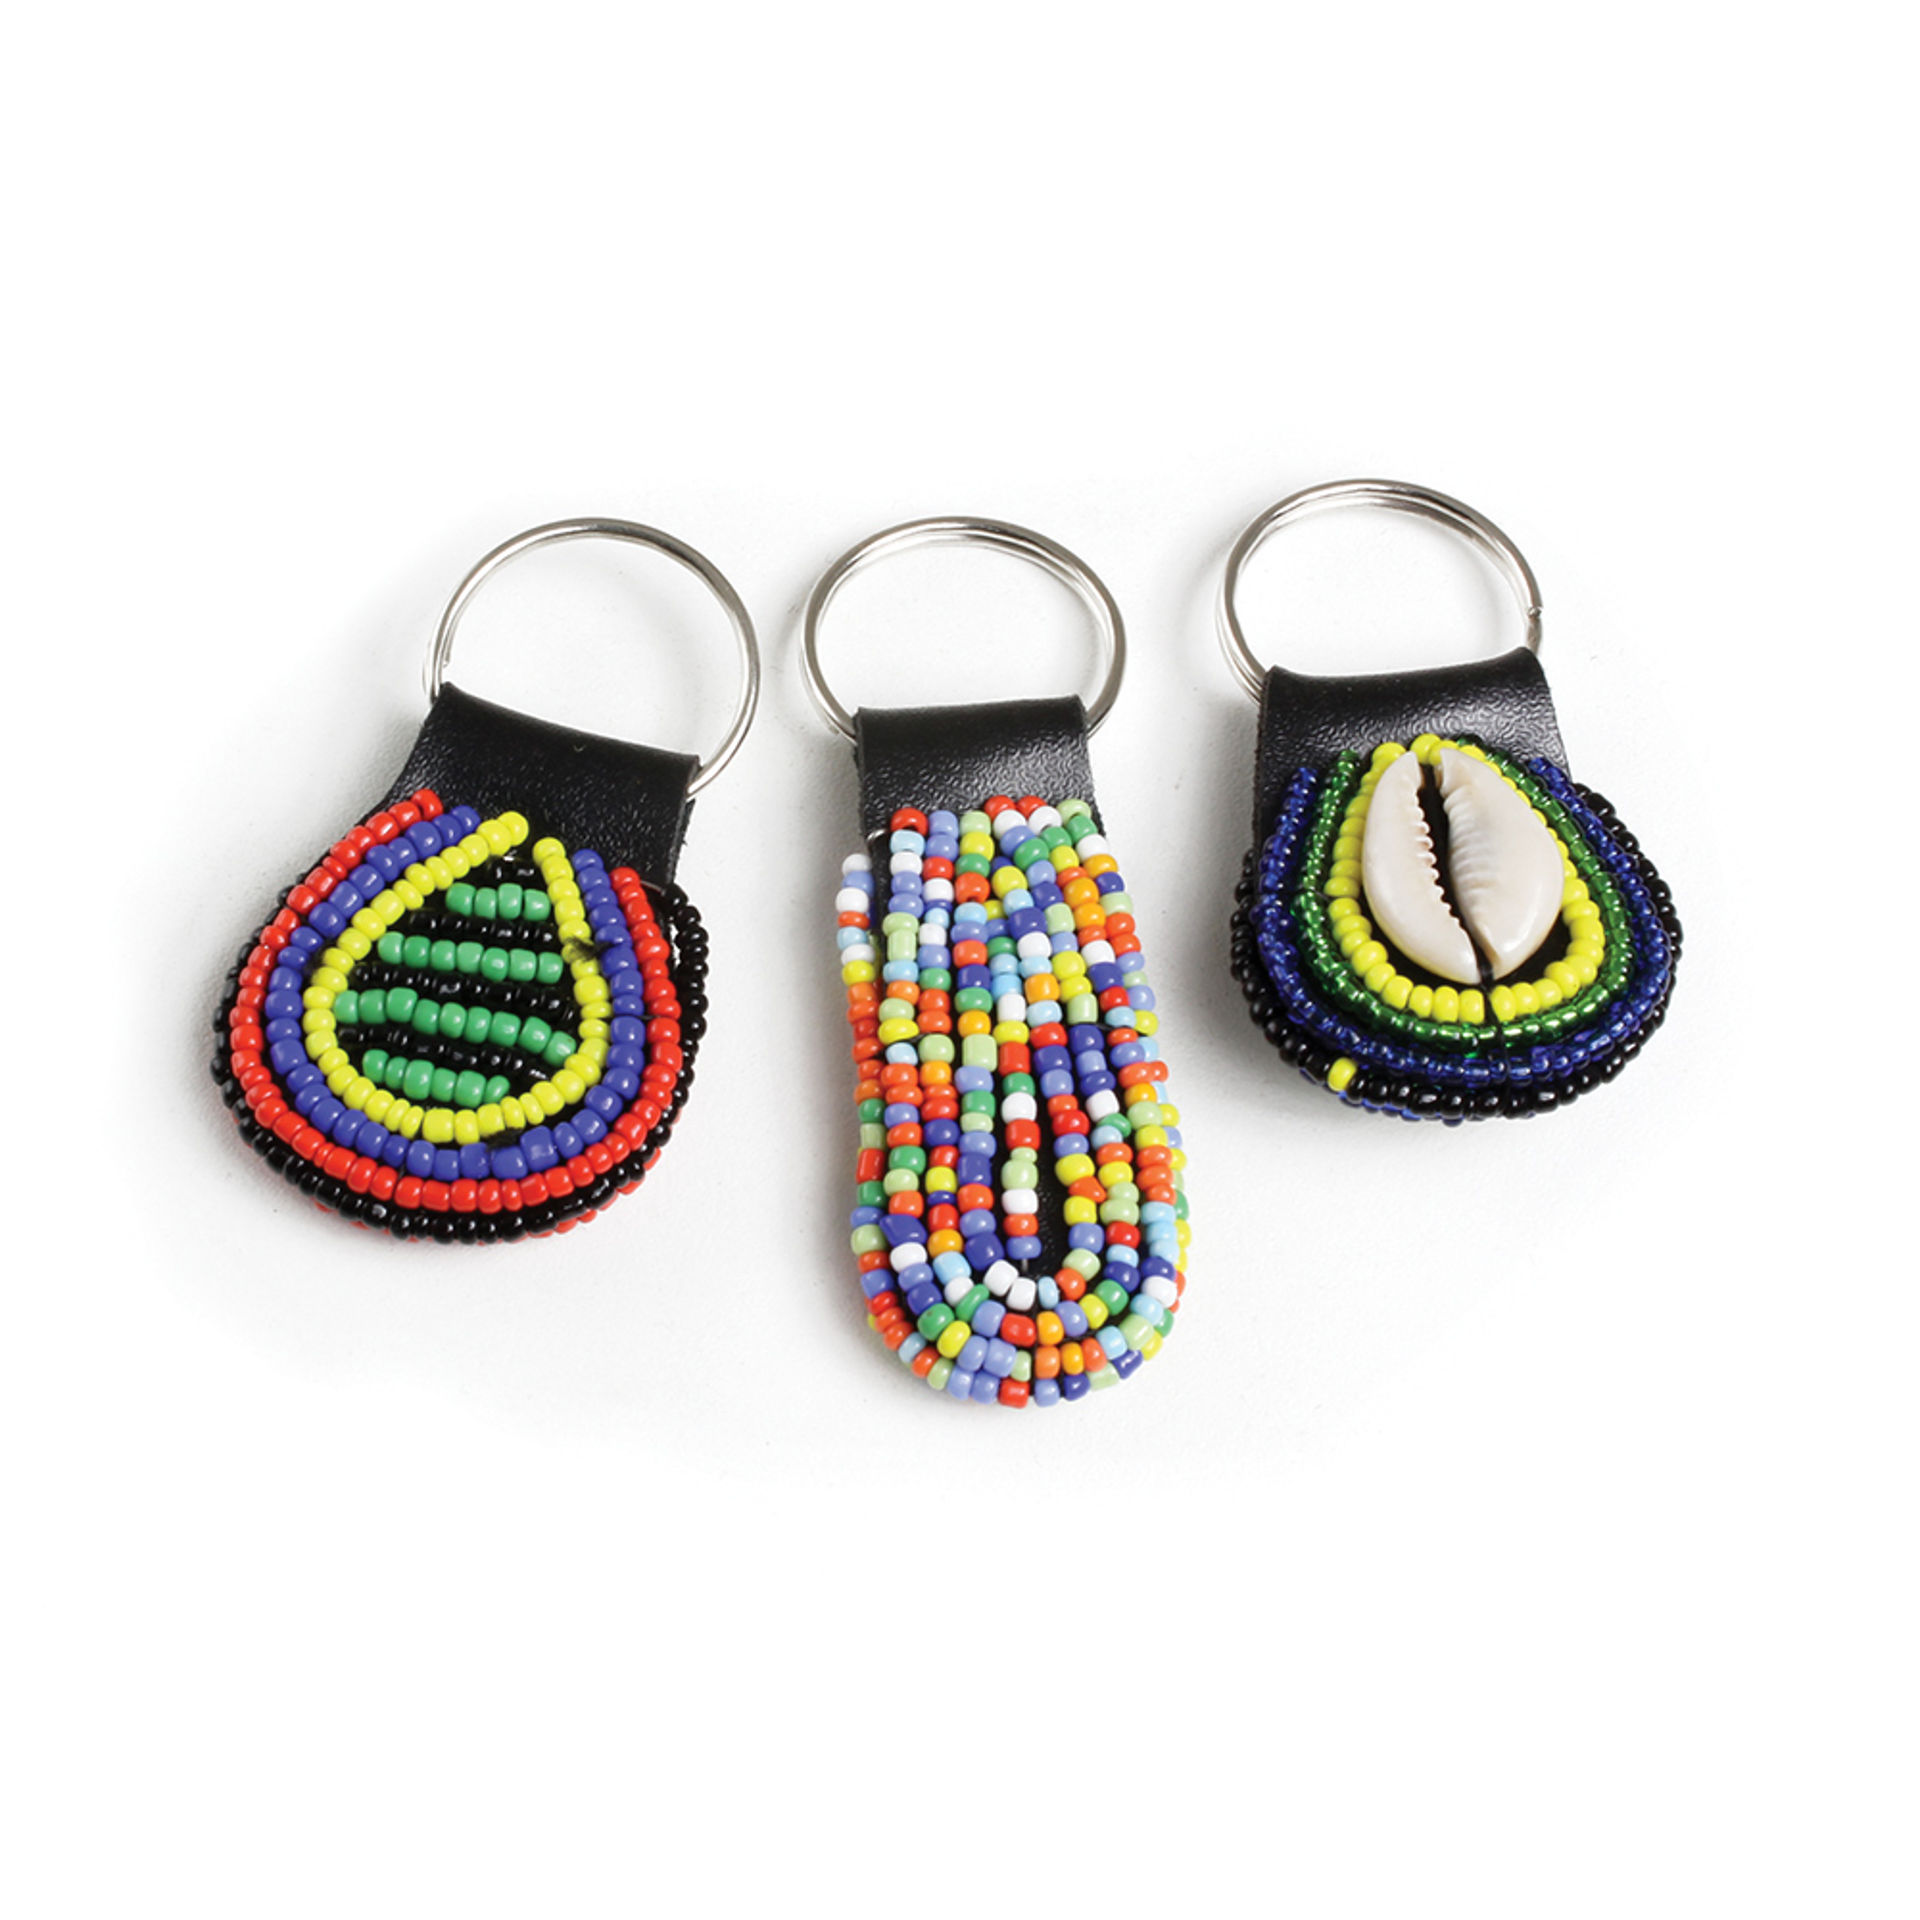 Picture of Maasai Beaded Key Chain